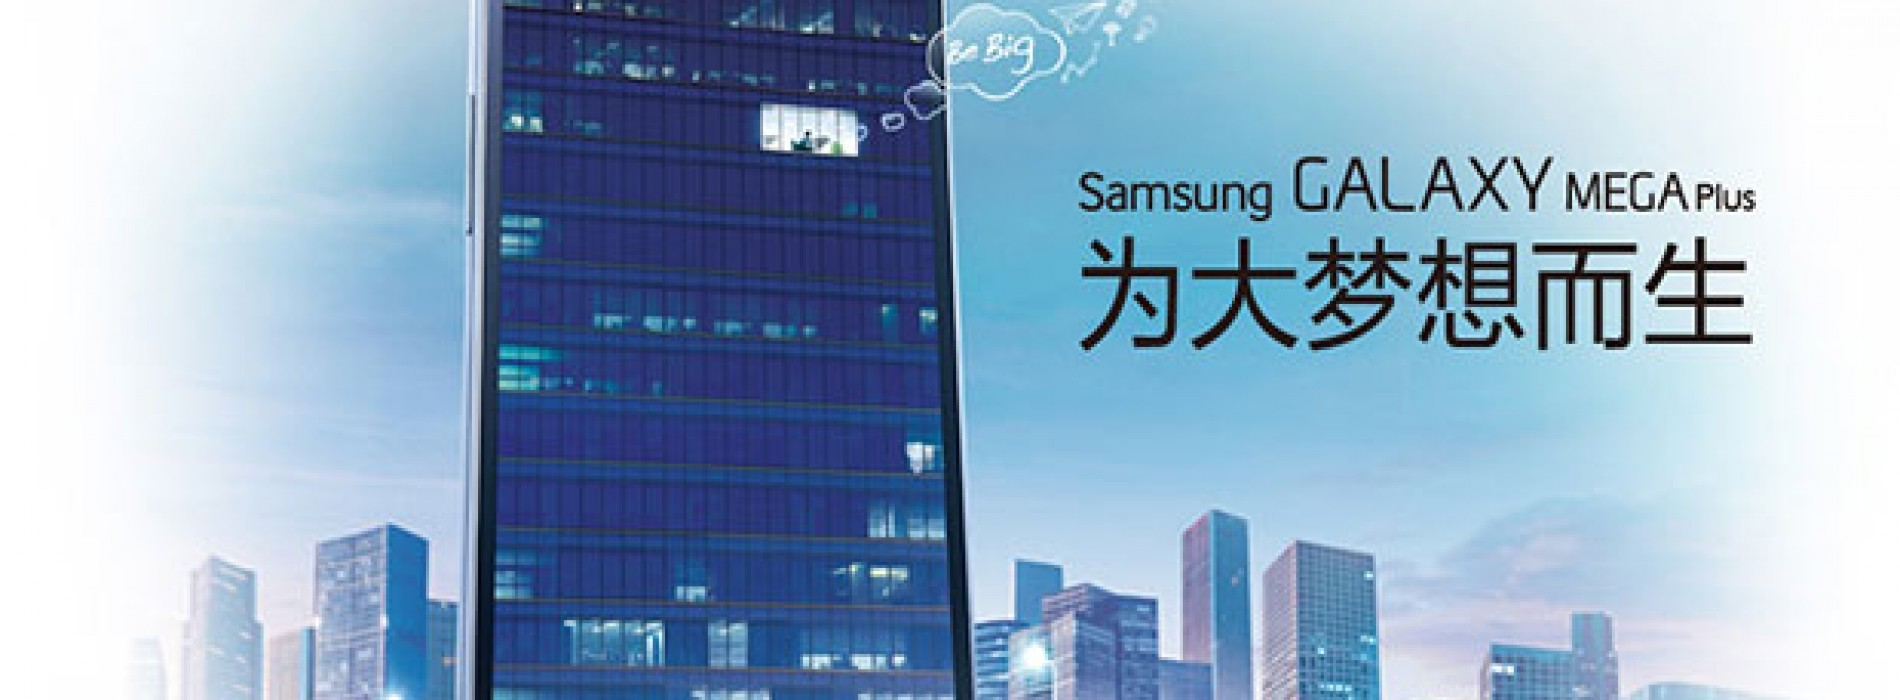 Samsung to debut the Galaxy Mega Plus in China